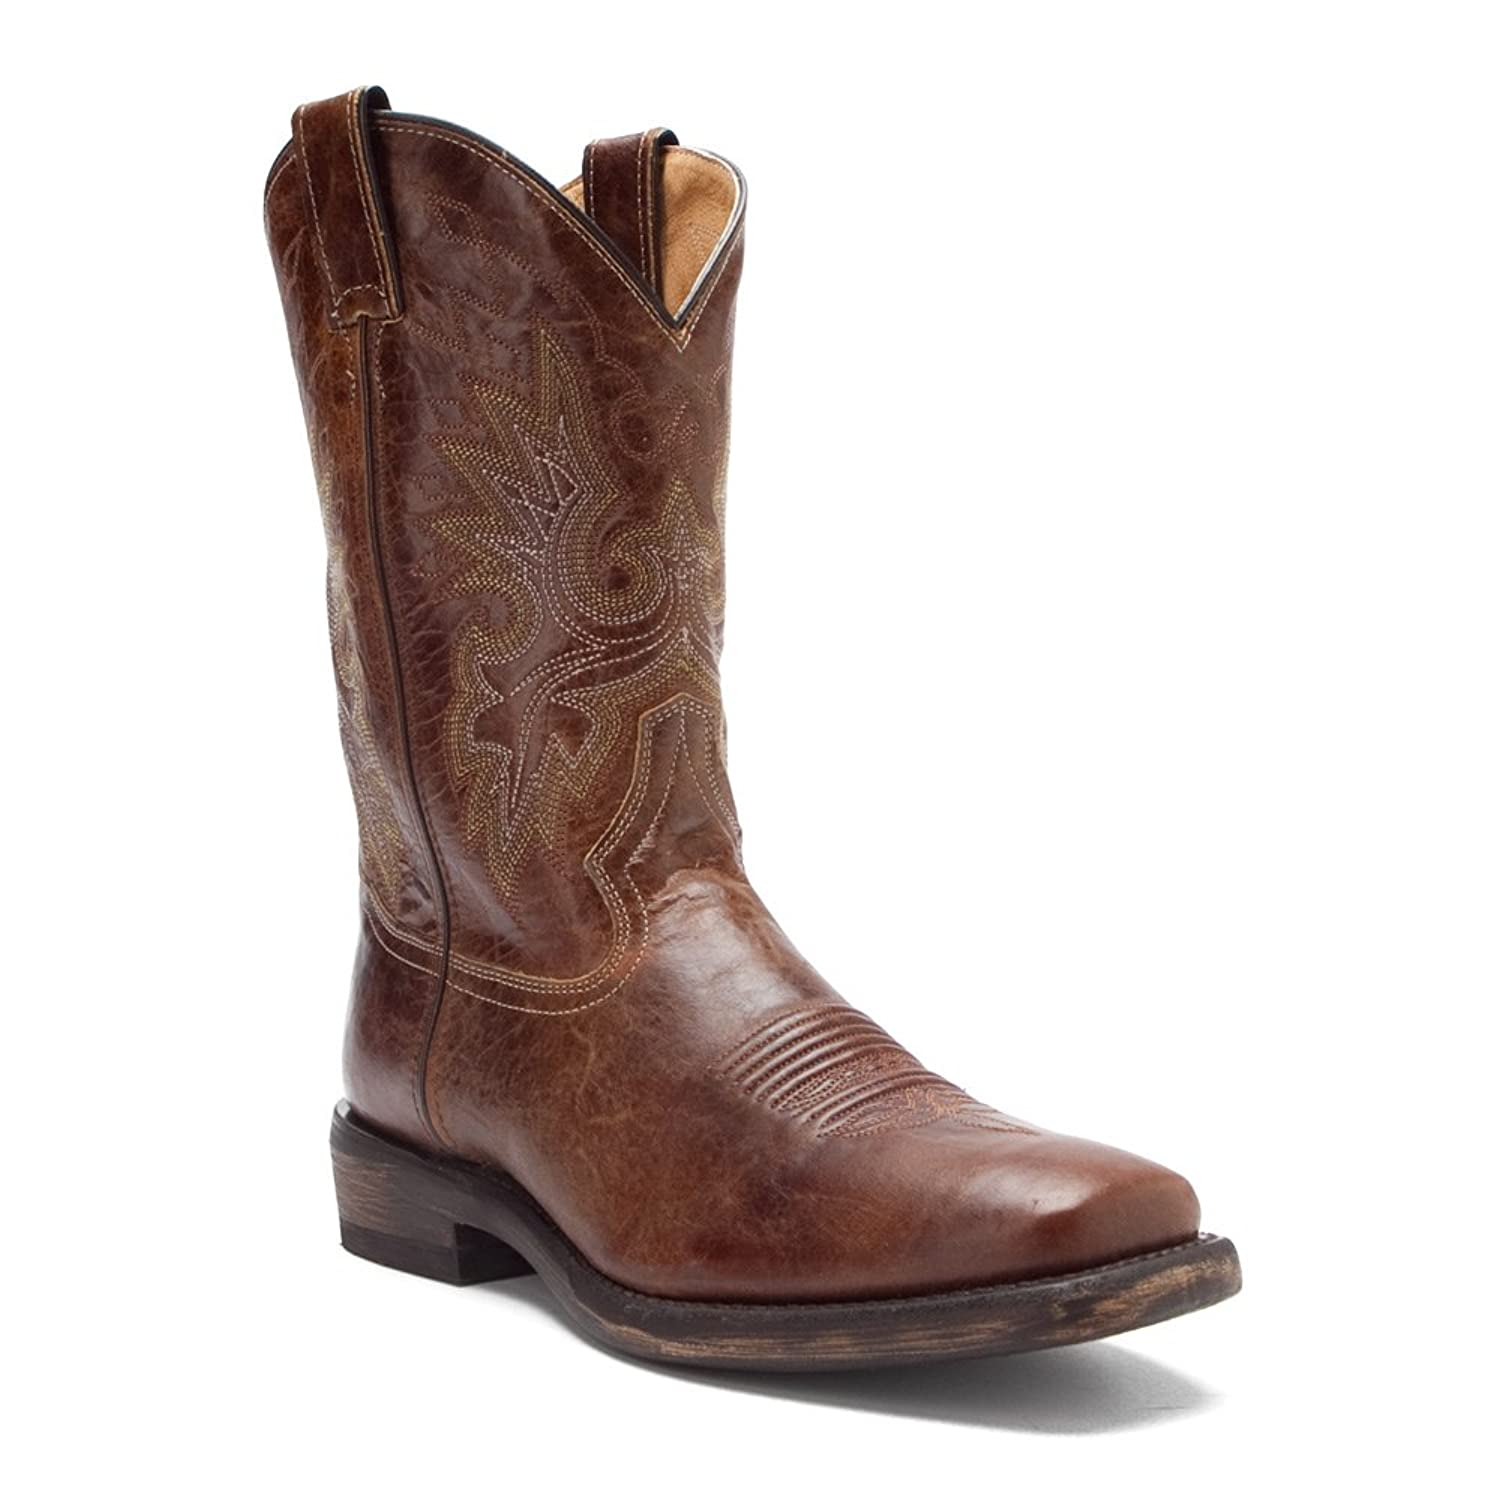 Double H Boot - Mens - Wide Square Toe Casual Western